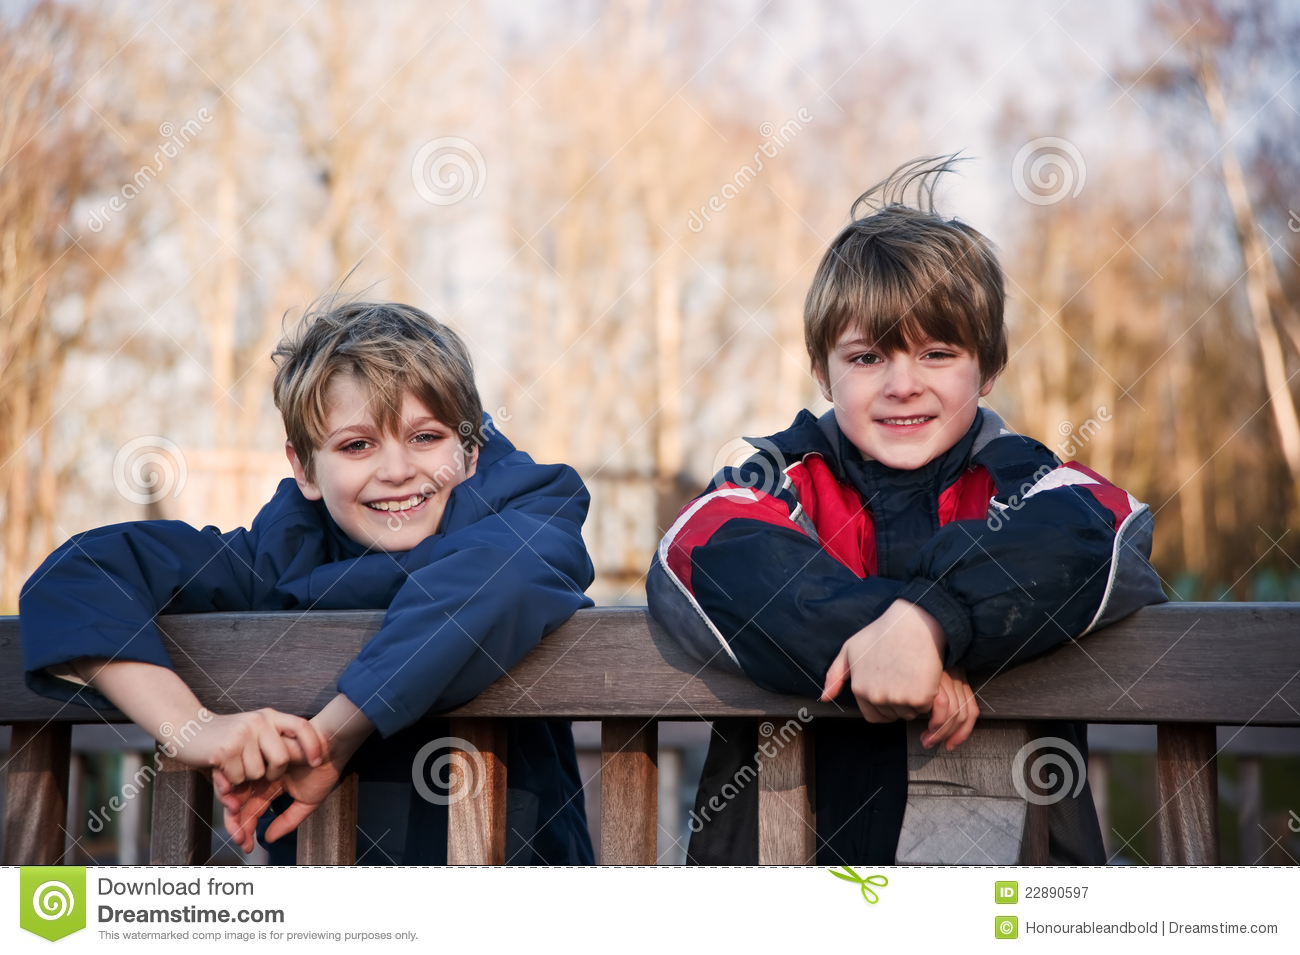 Outdoors portrait of two young happy brothers